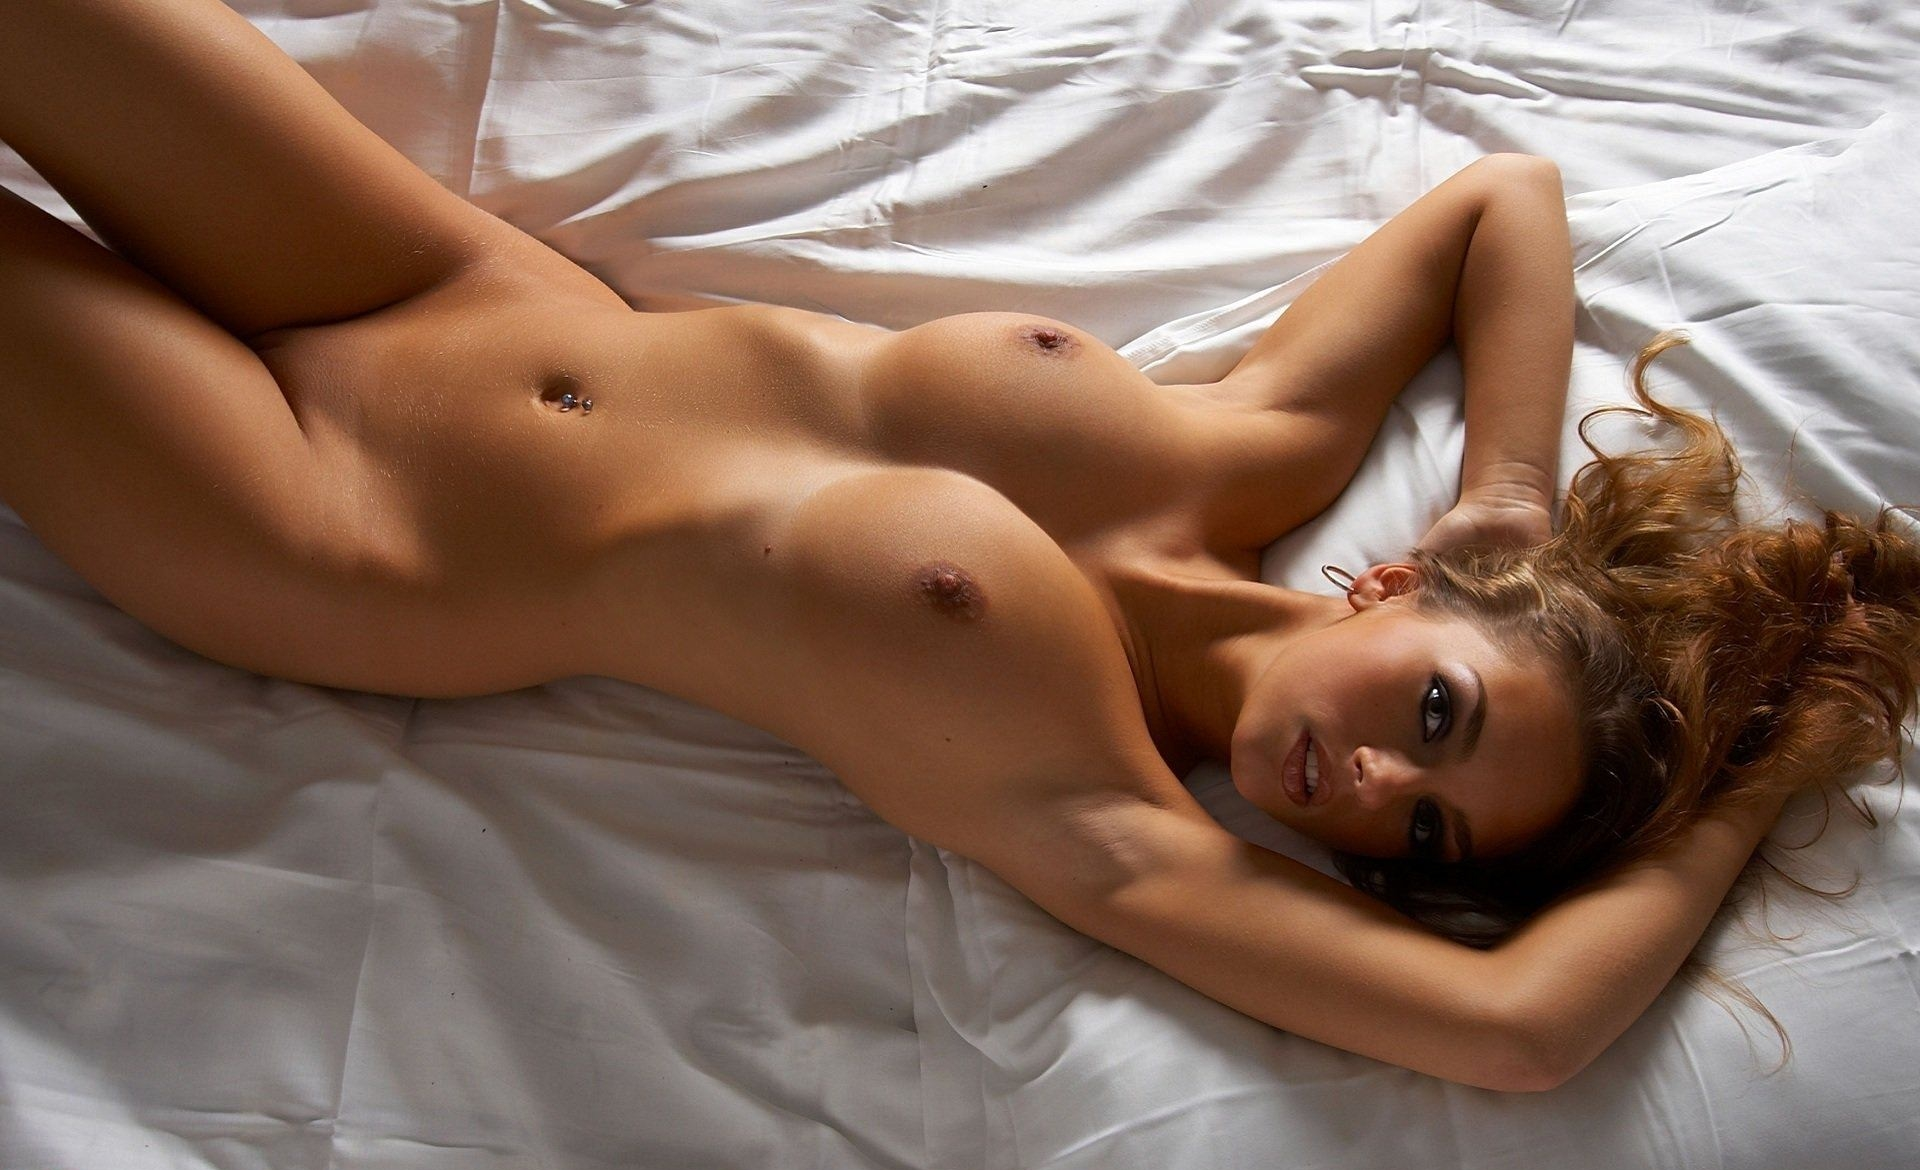 Beautiful women nude pictures erotic — img 2